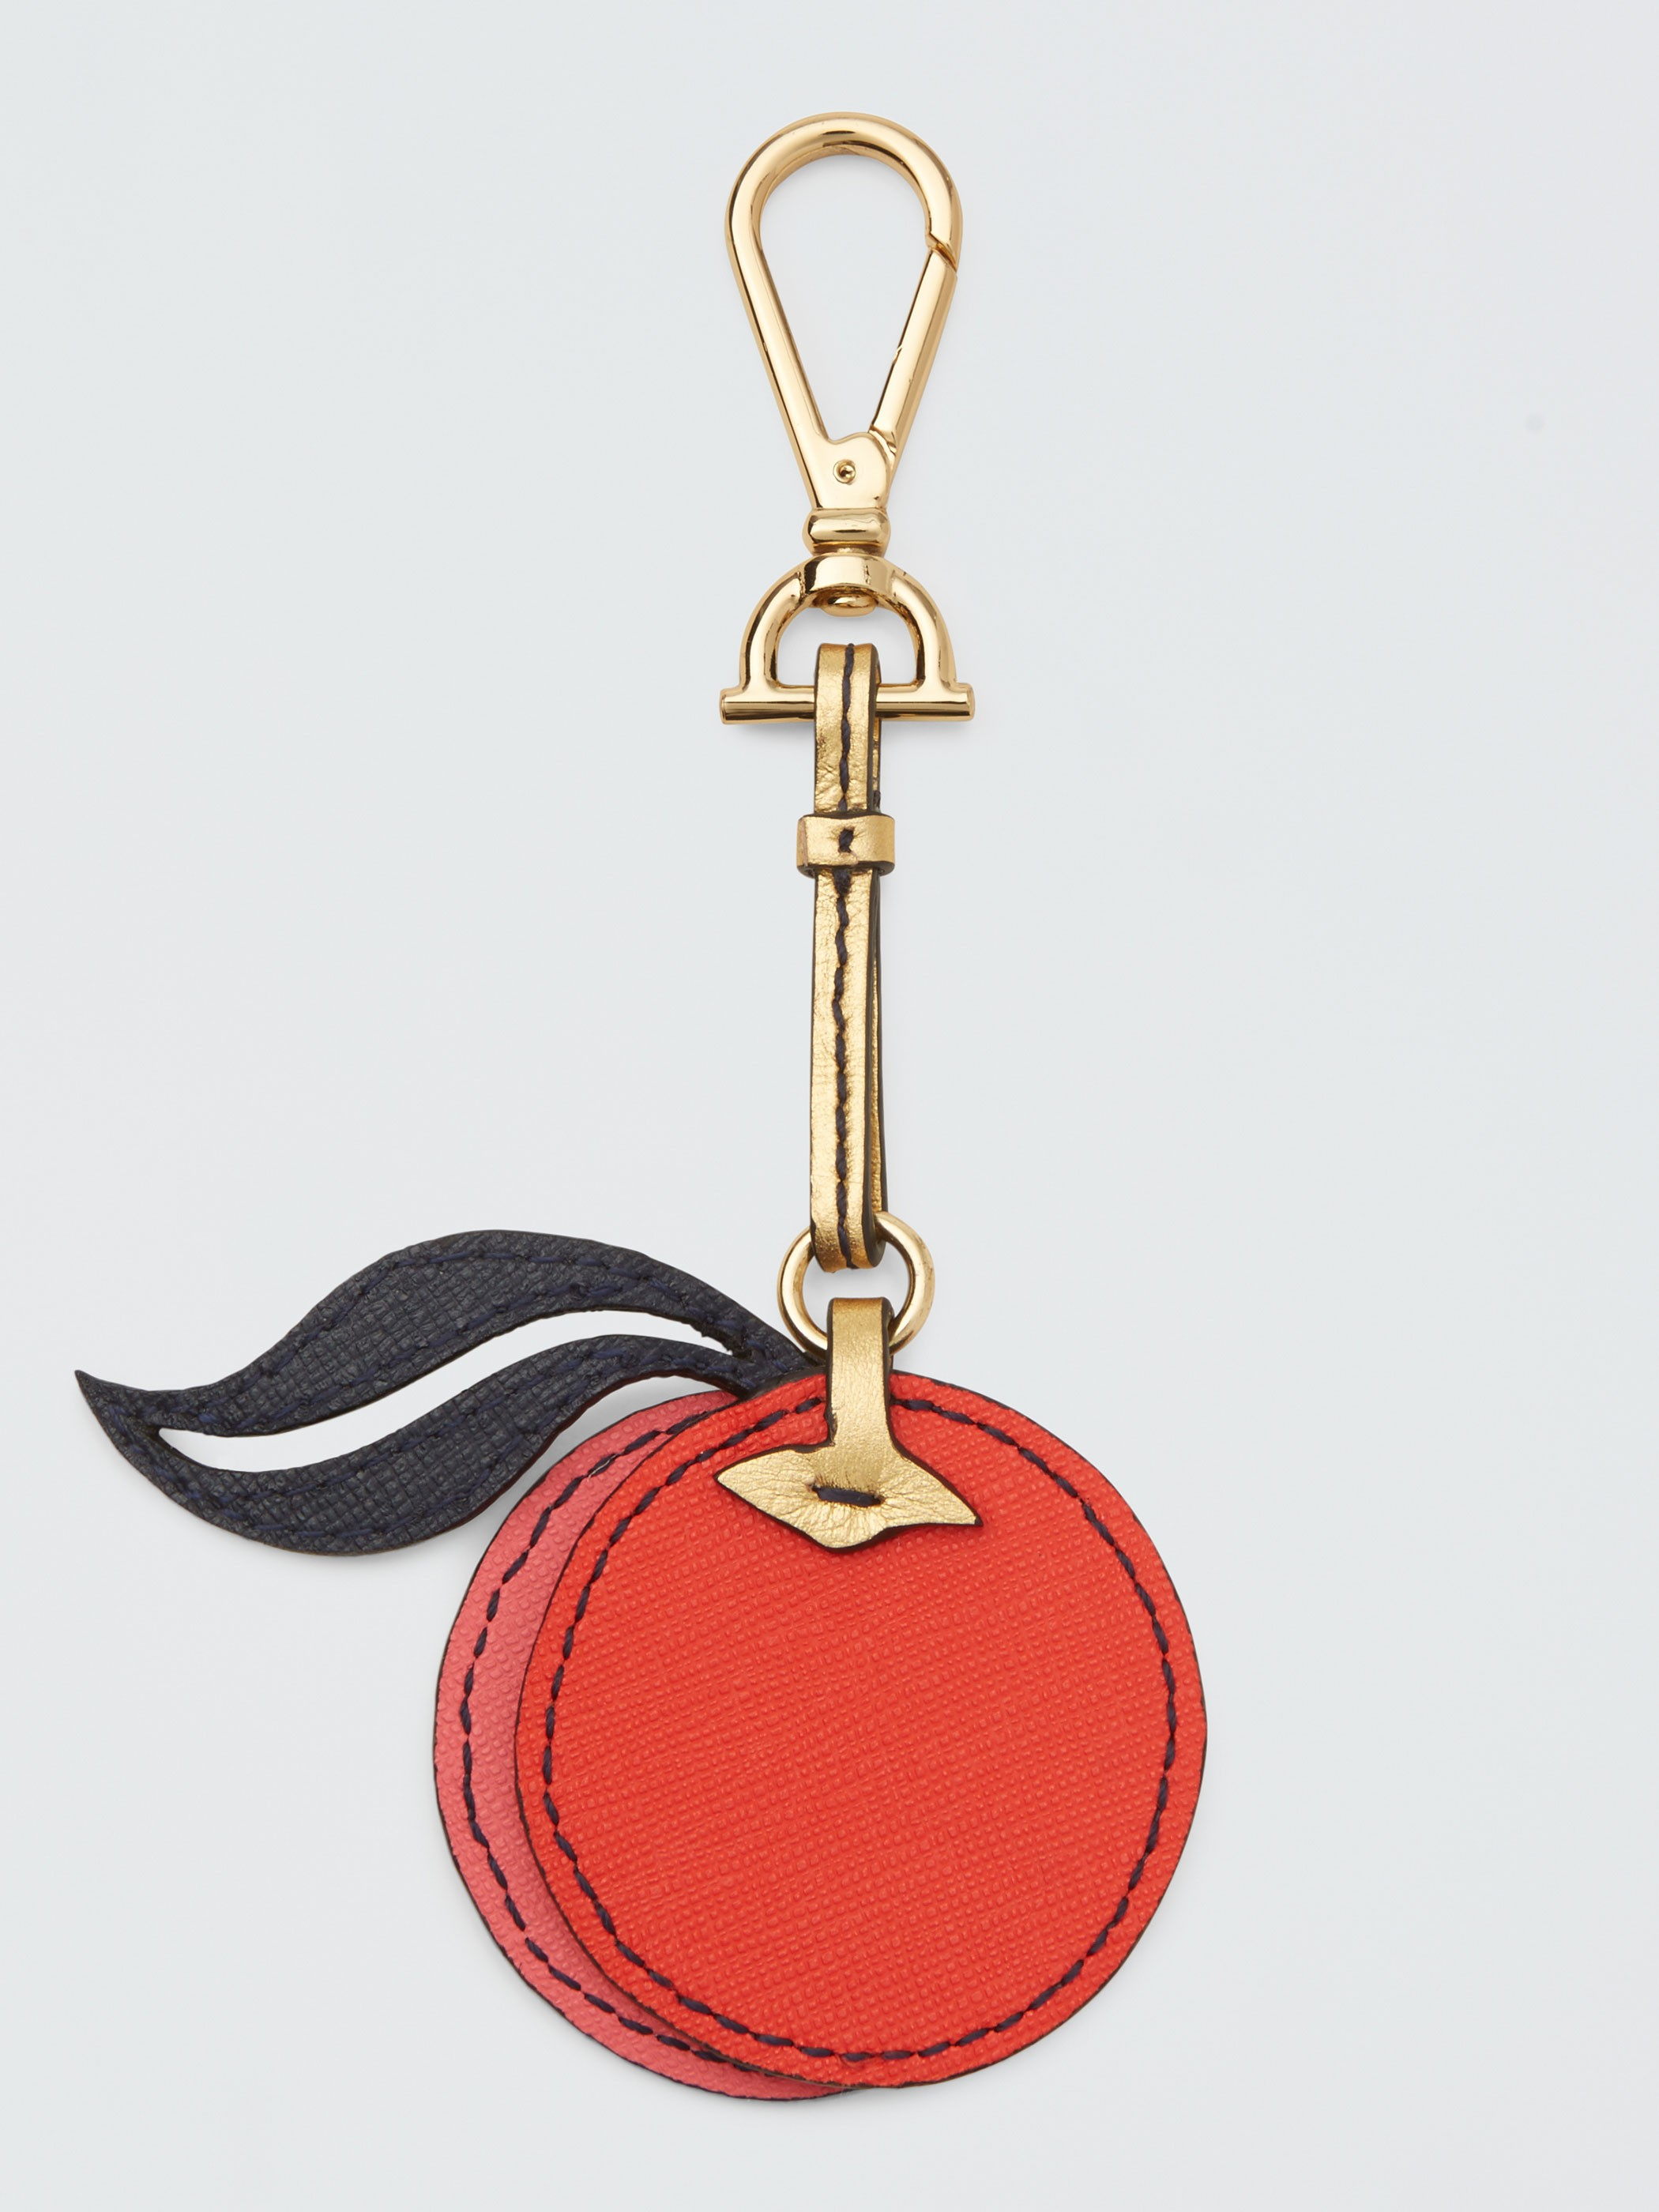 Peach Key Fob  - Made from Saffiano leather and stunning gold hardware in the shape of a horse bit! There are a few adorable options on the website!